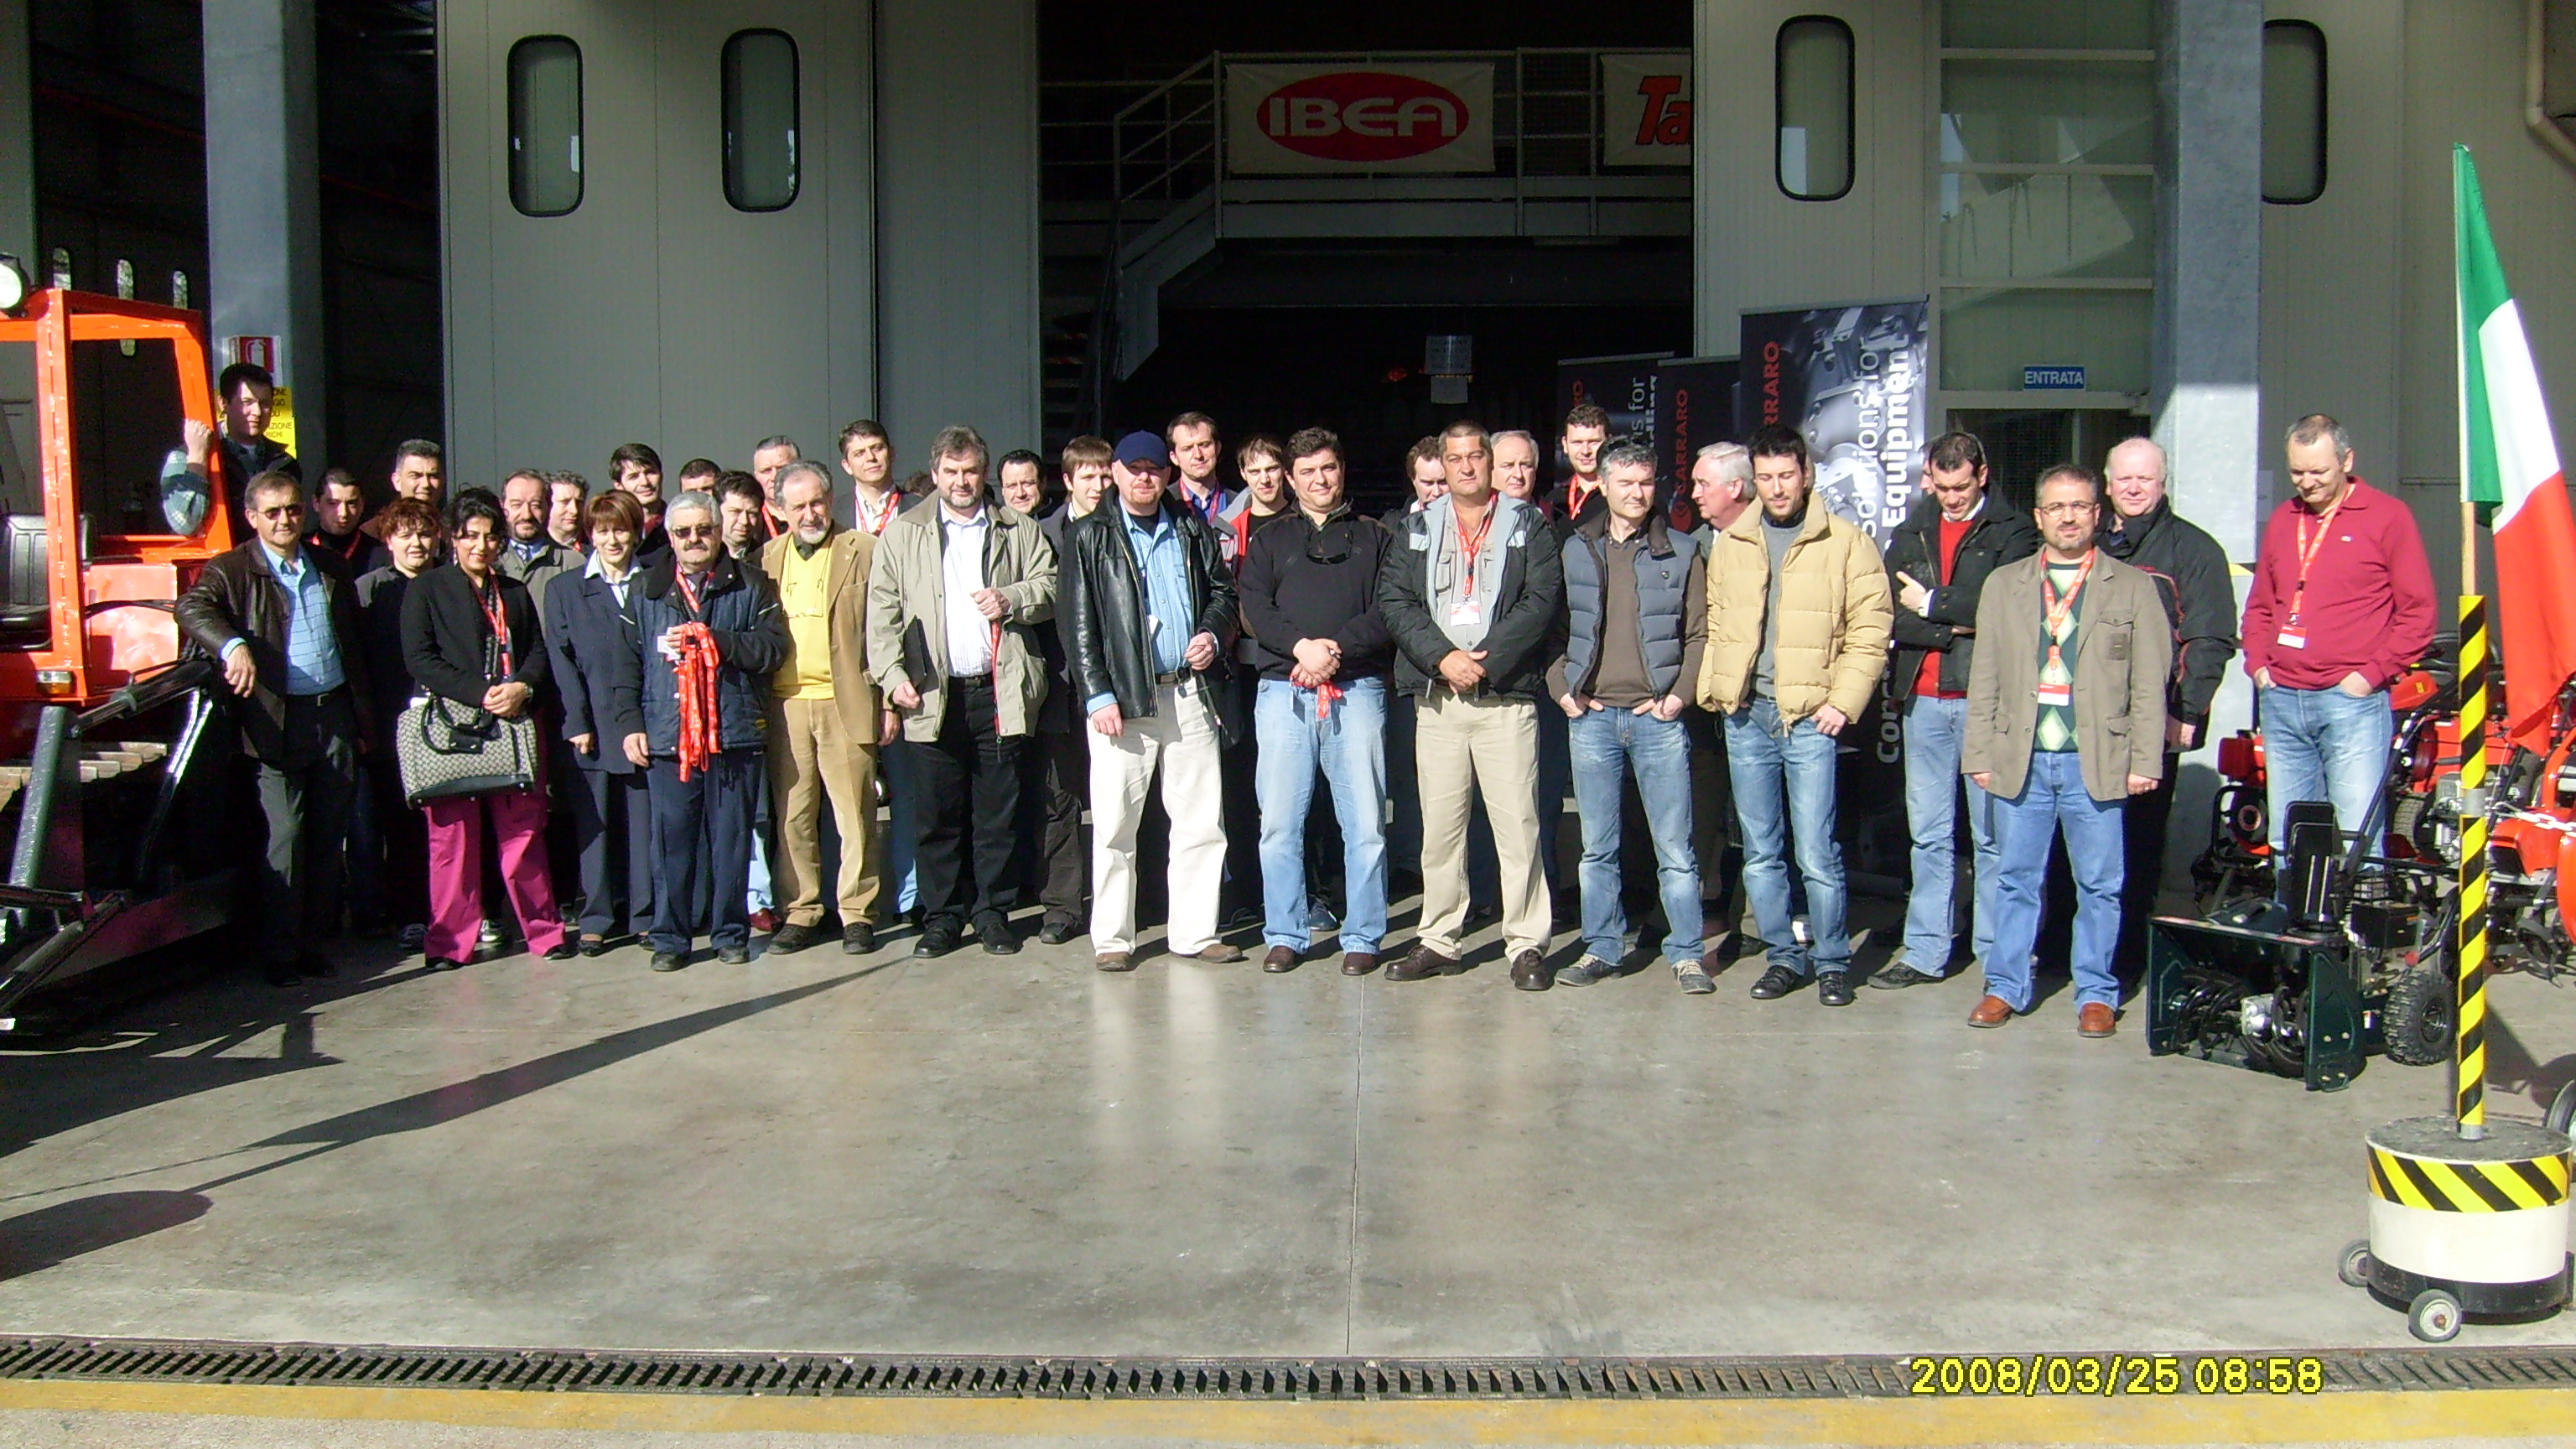 The first Carraro Spare Parts distributor training, 26-28 March 2008 (Meldola, FC, Italy)